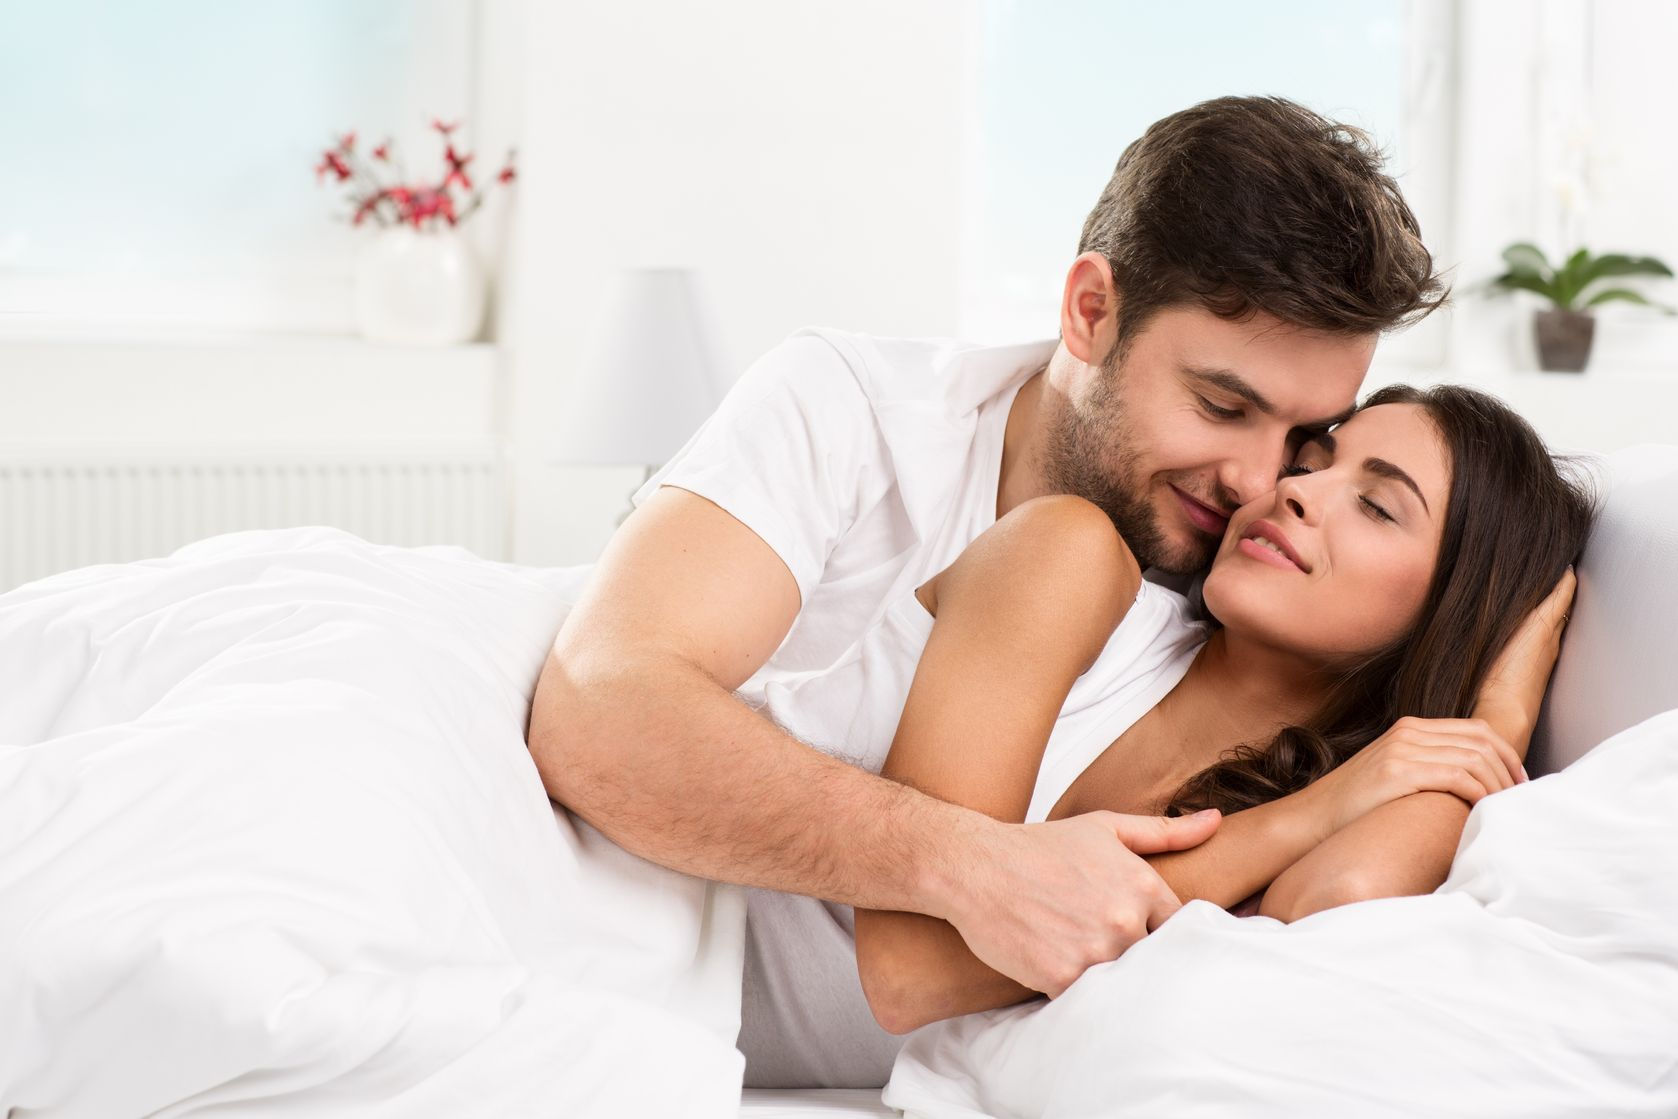 Bed drive guide in lover romance sex wild woman